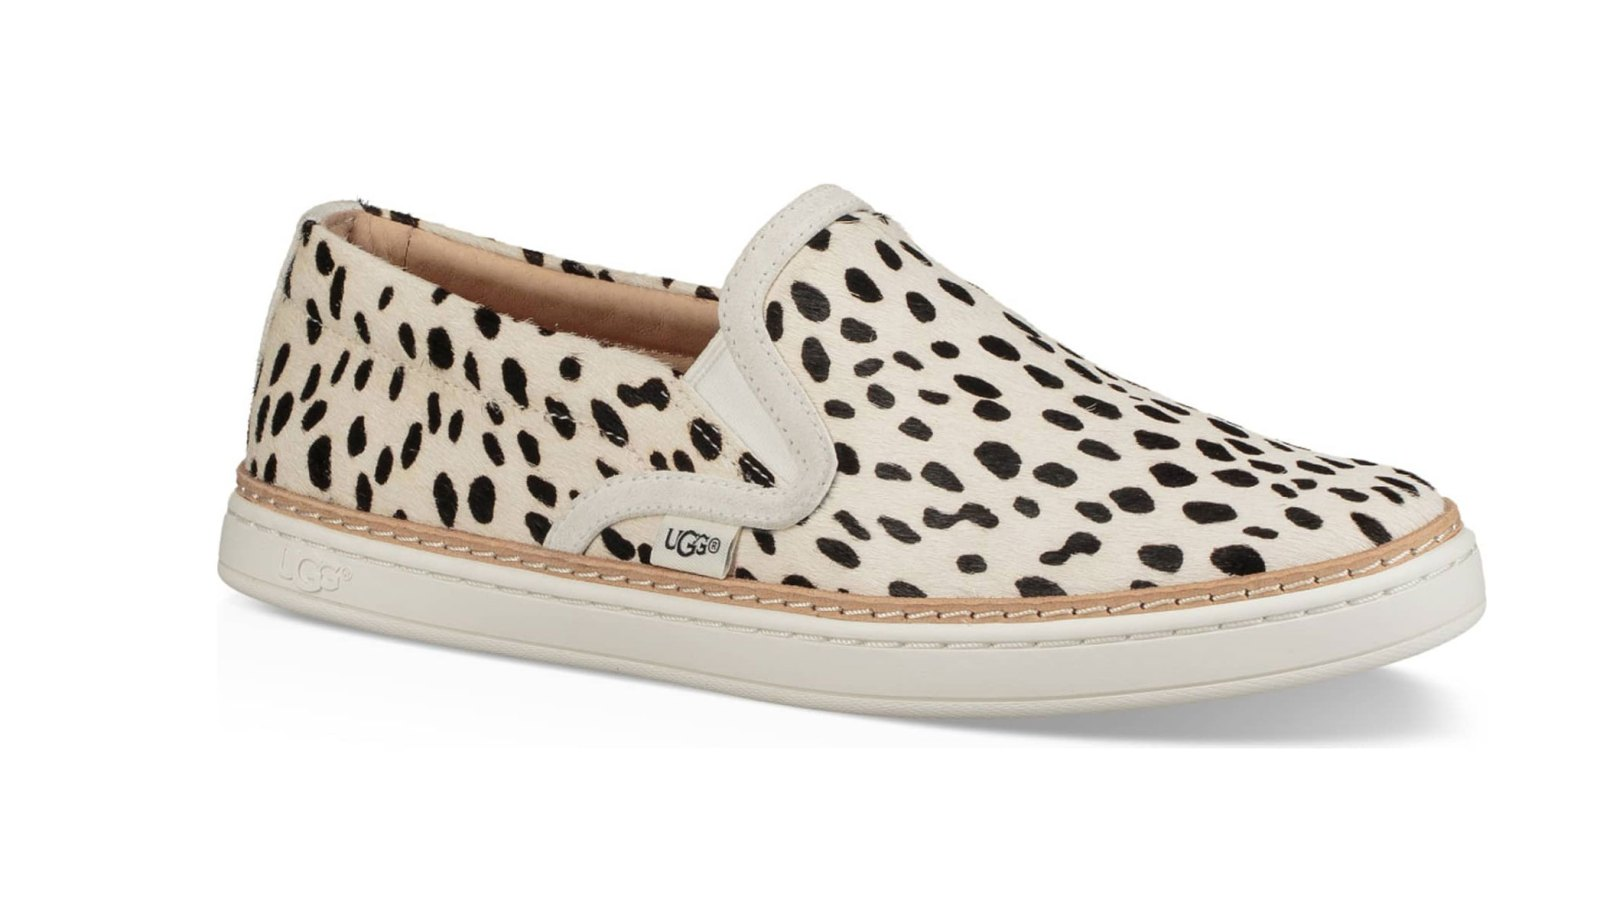 48b9c62a9 Ugg Has Trendy New Slip-On Sneakers That We Never Want to Take Off